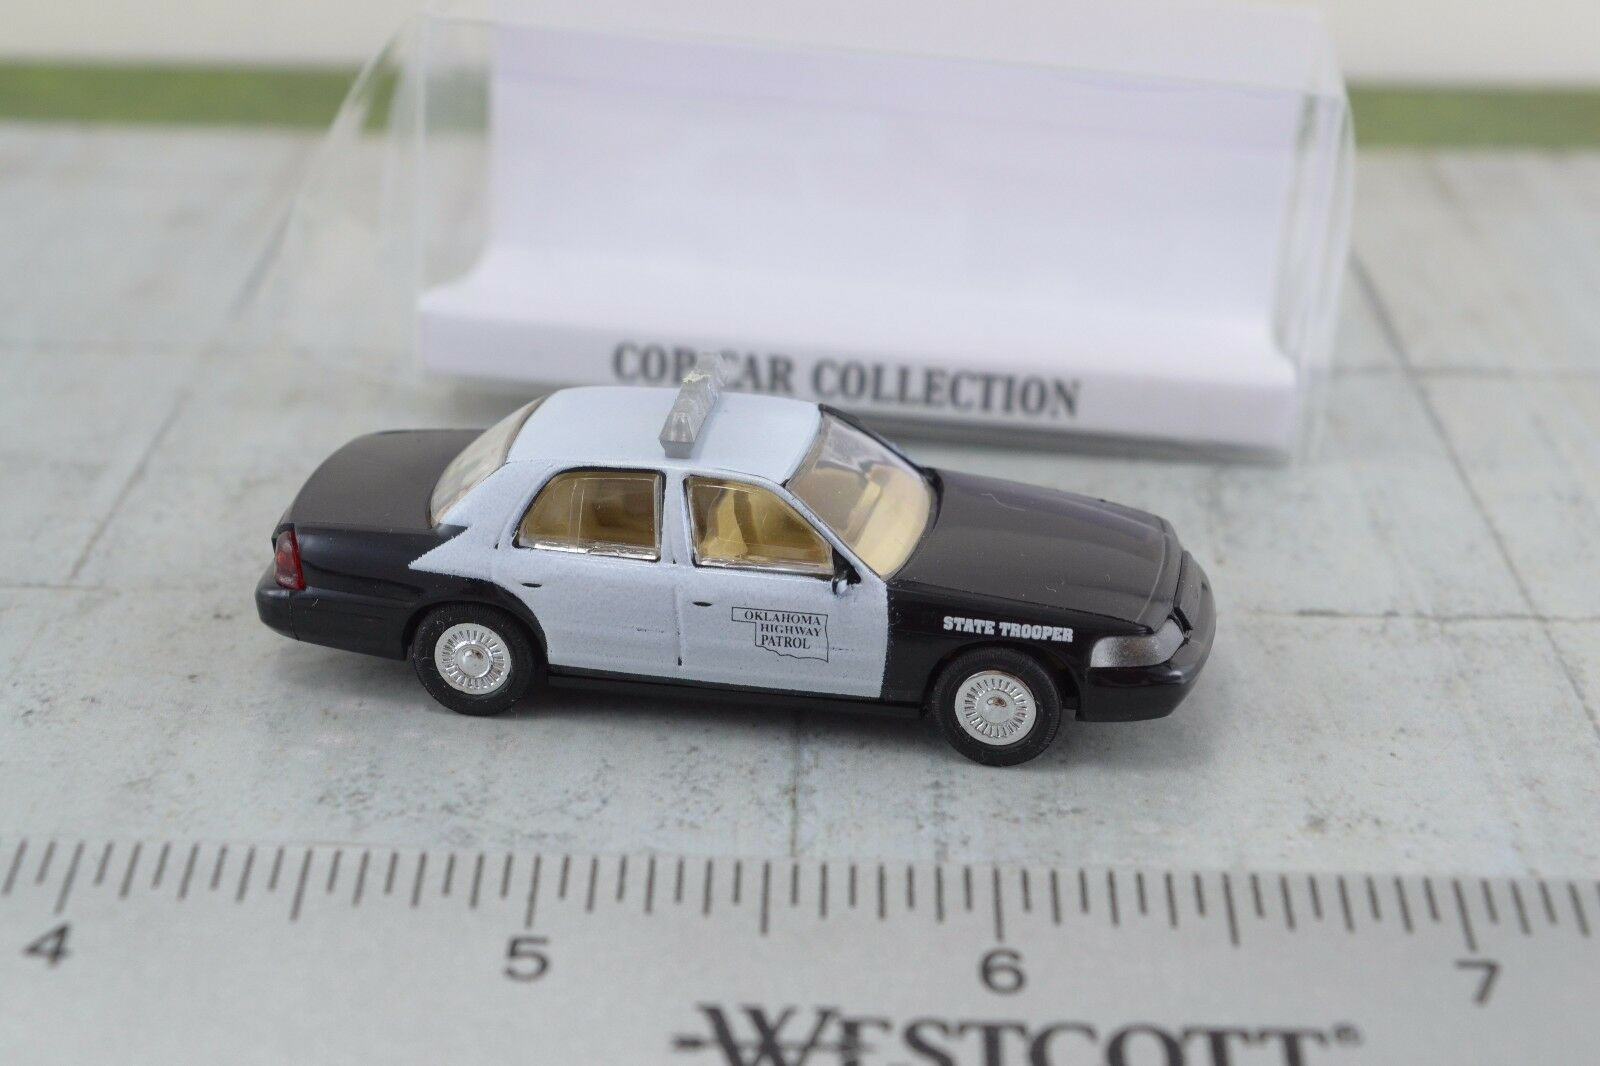 ST Ford Crown Victoria San Diego County Sheriff Cop Car Collection 1:87